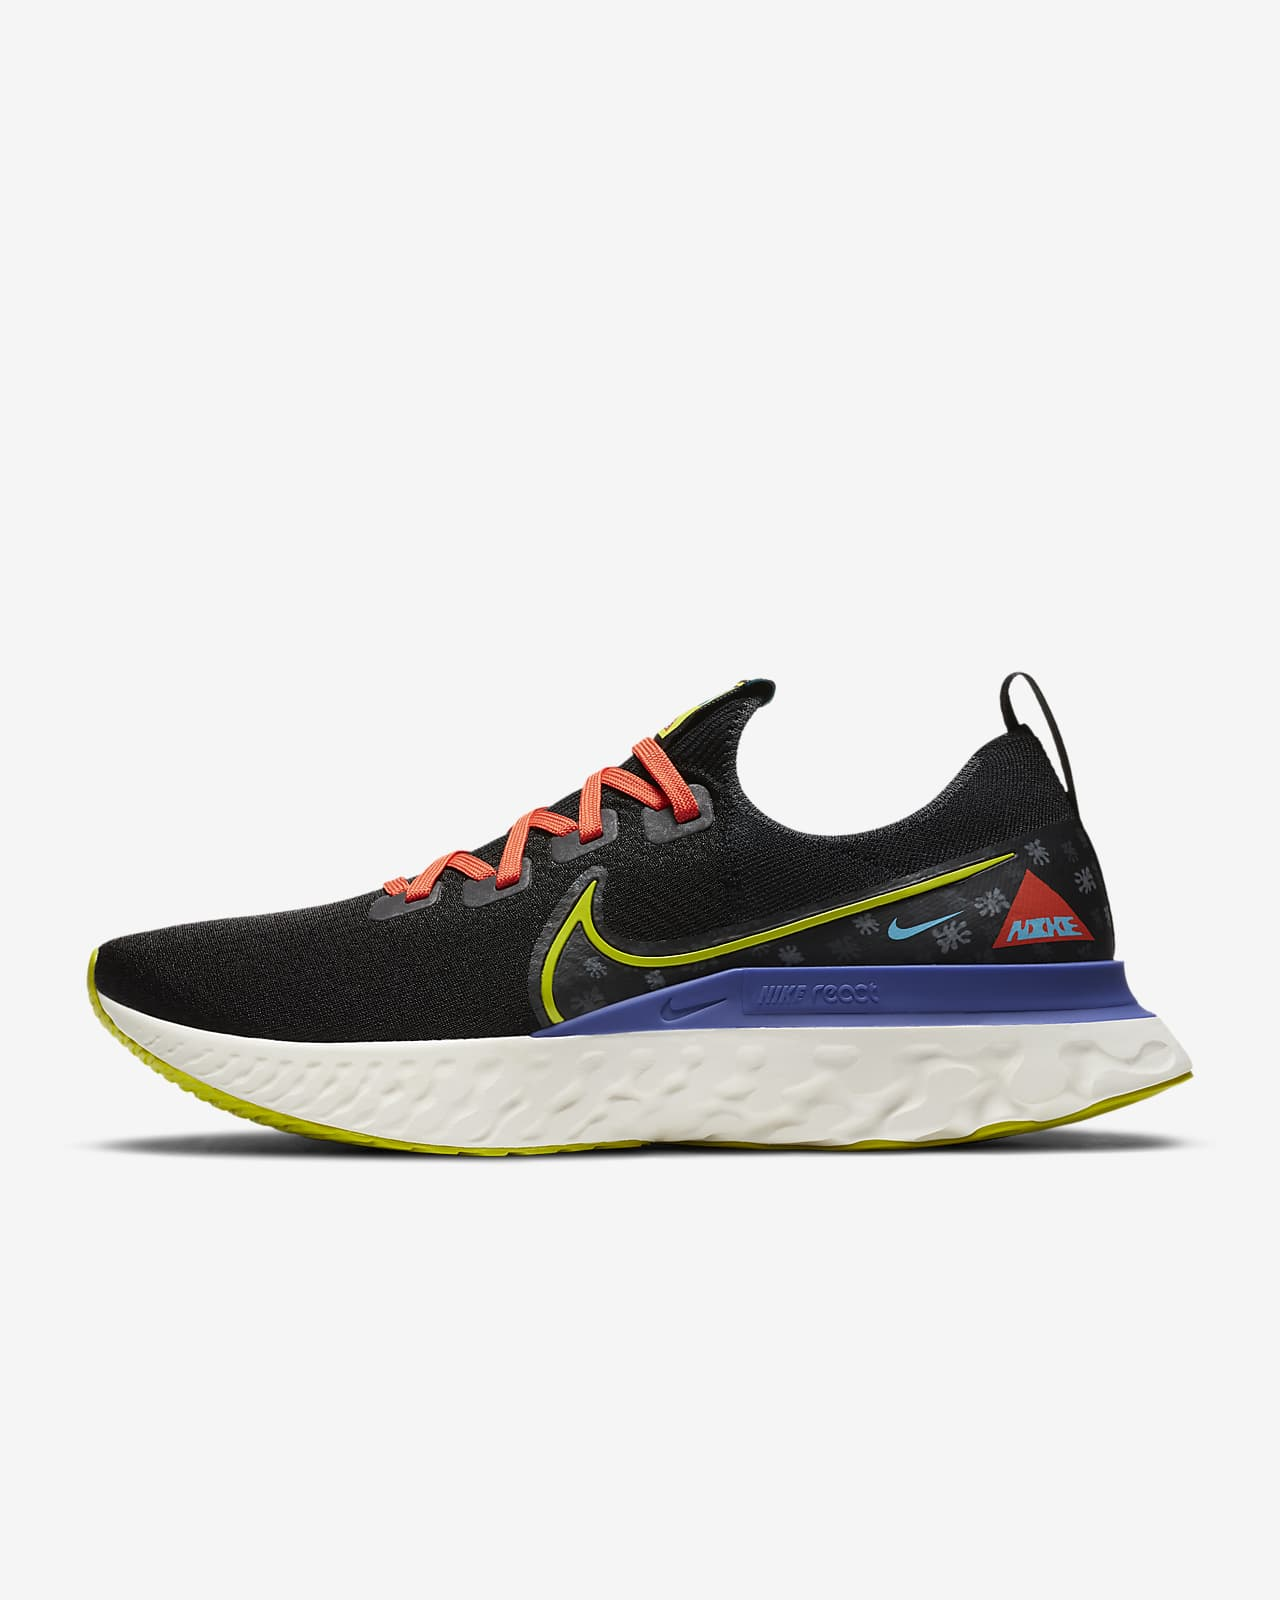 Nike React Infinity Run Flyknit A.I.R. Chaz Bear Running Shoe